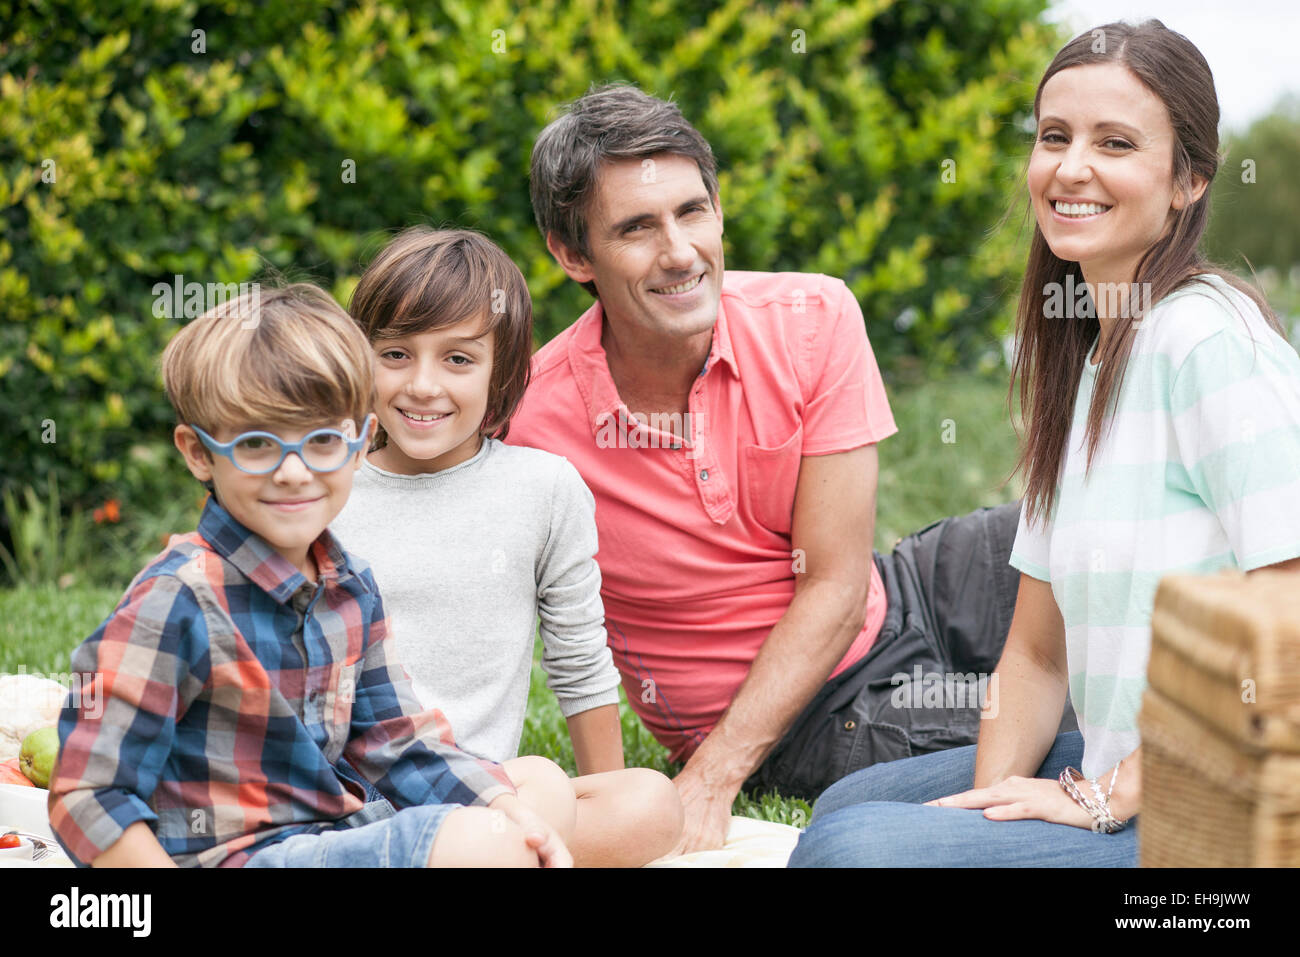 Family at park together, portrait - Stock Image